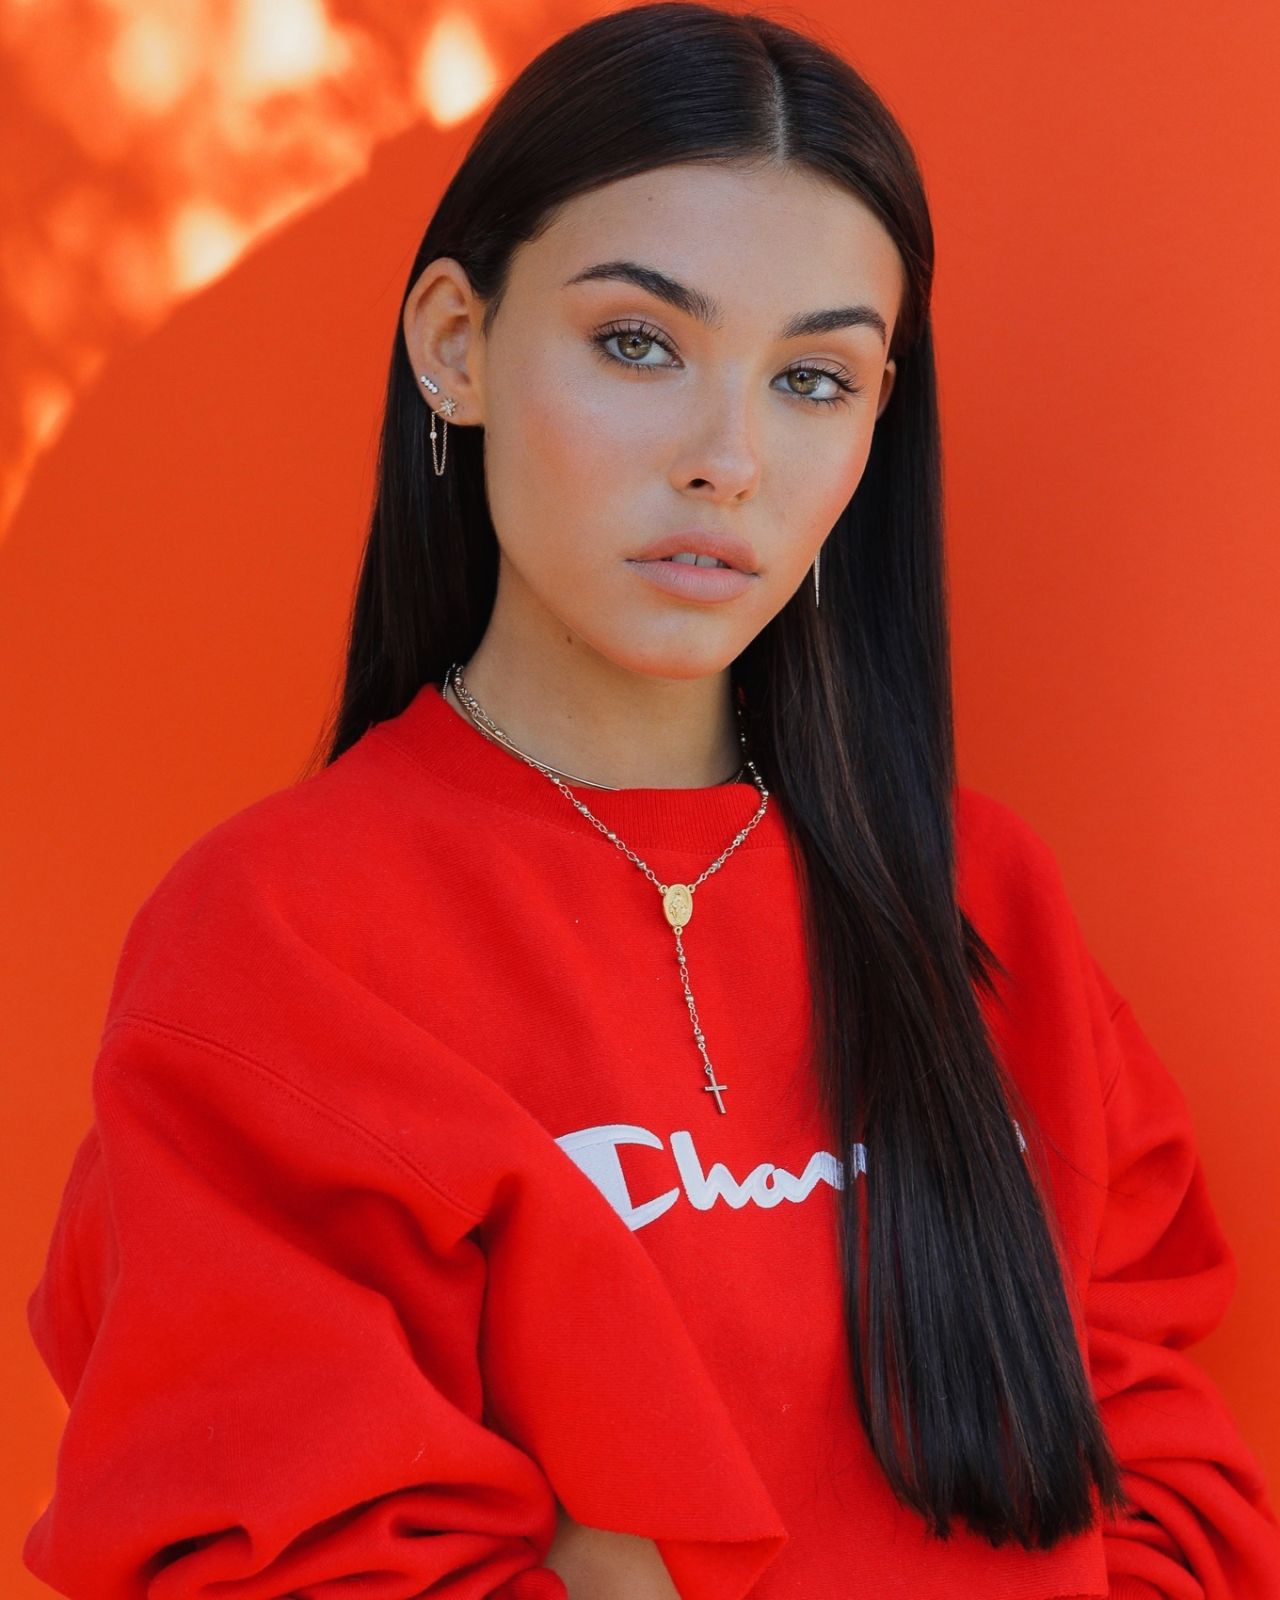 Madison Beer - Photoshoot for Rawpages.com, September 2017